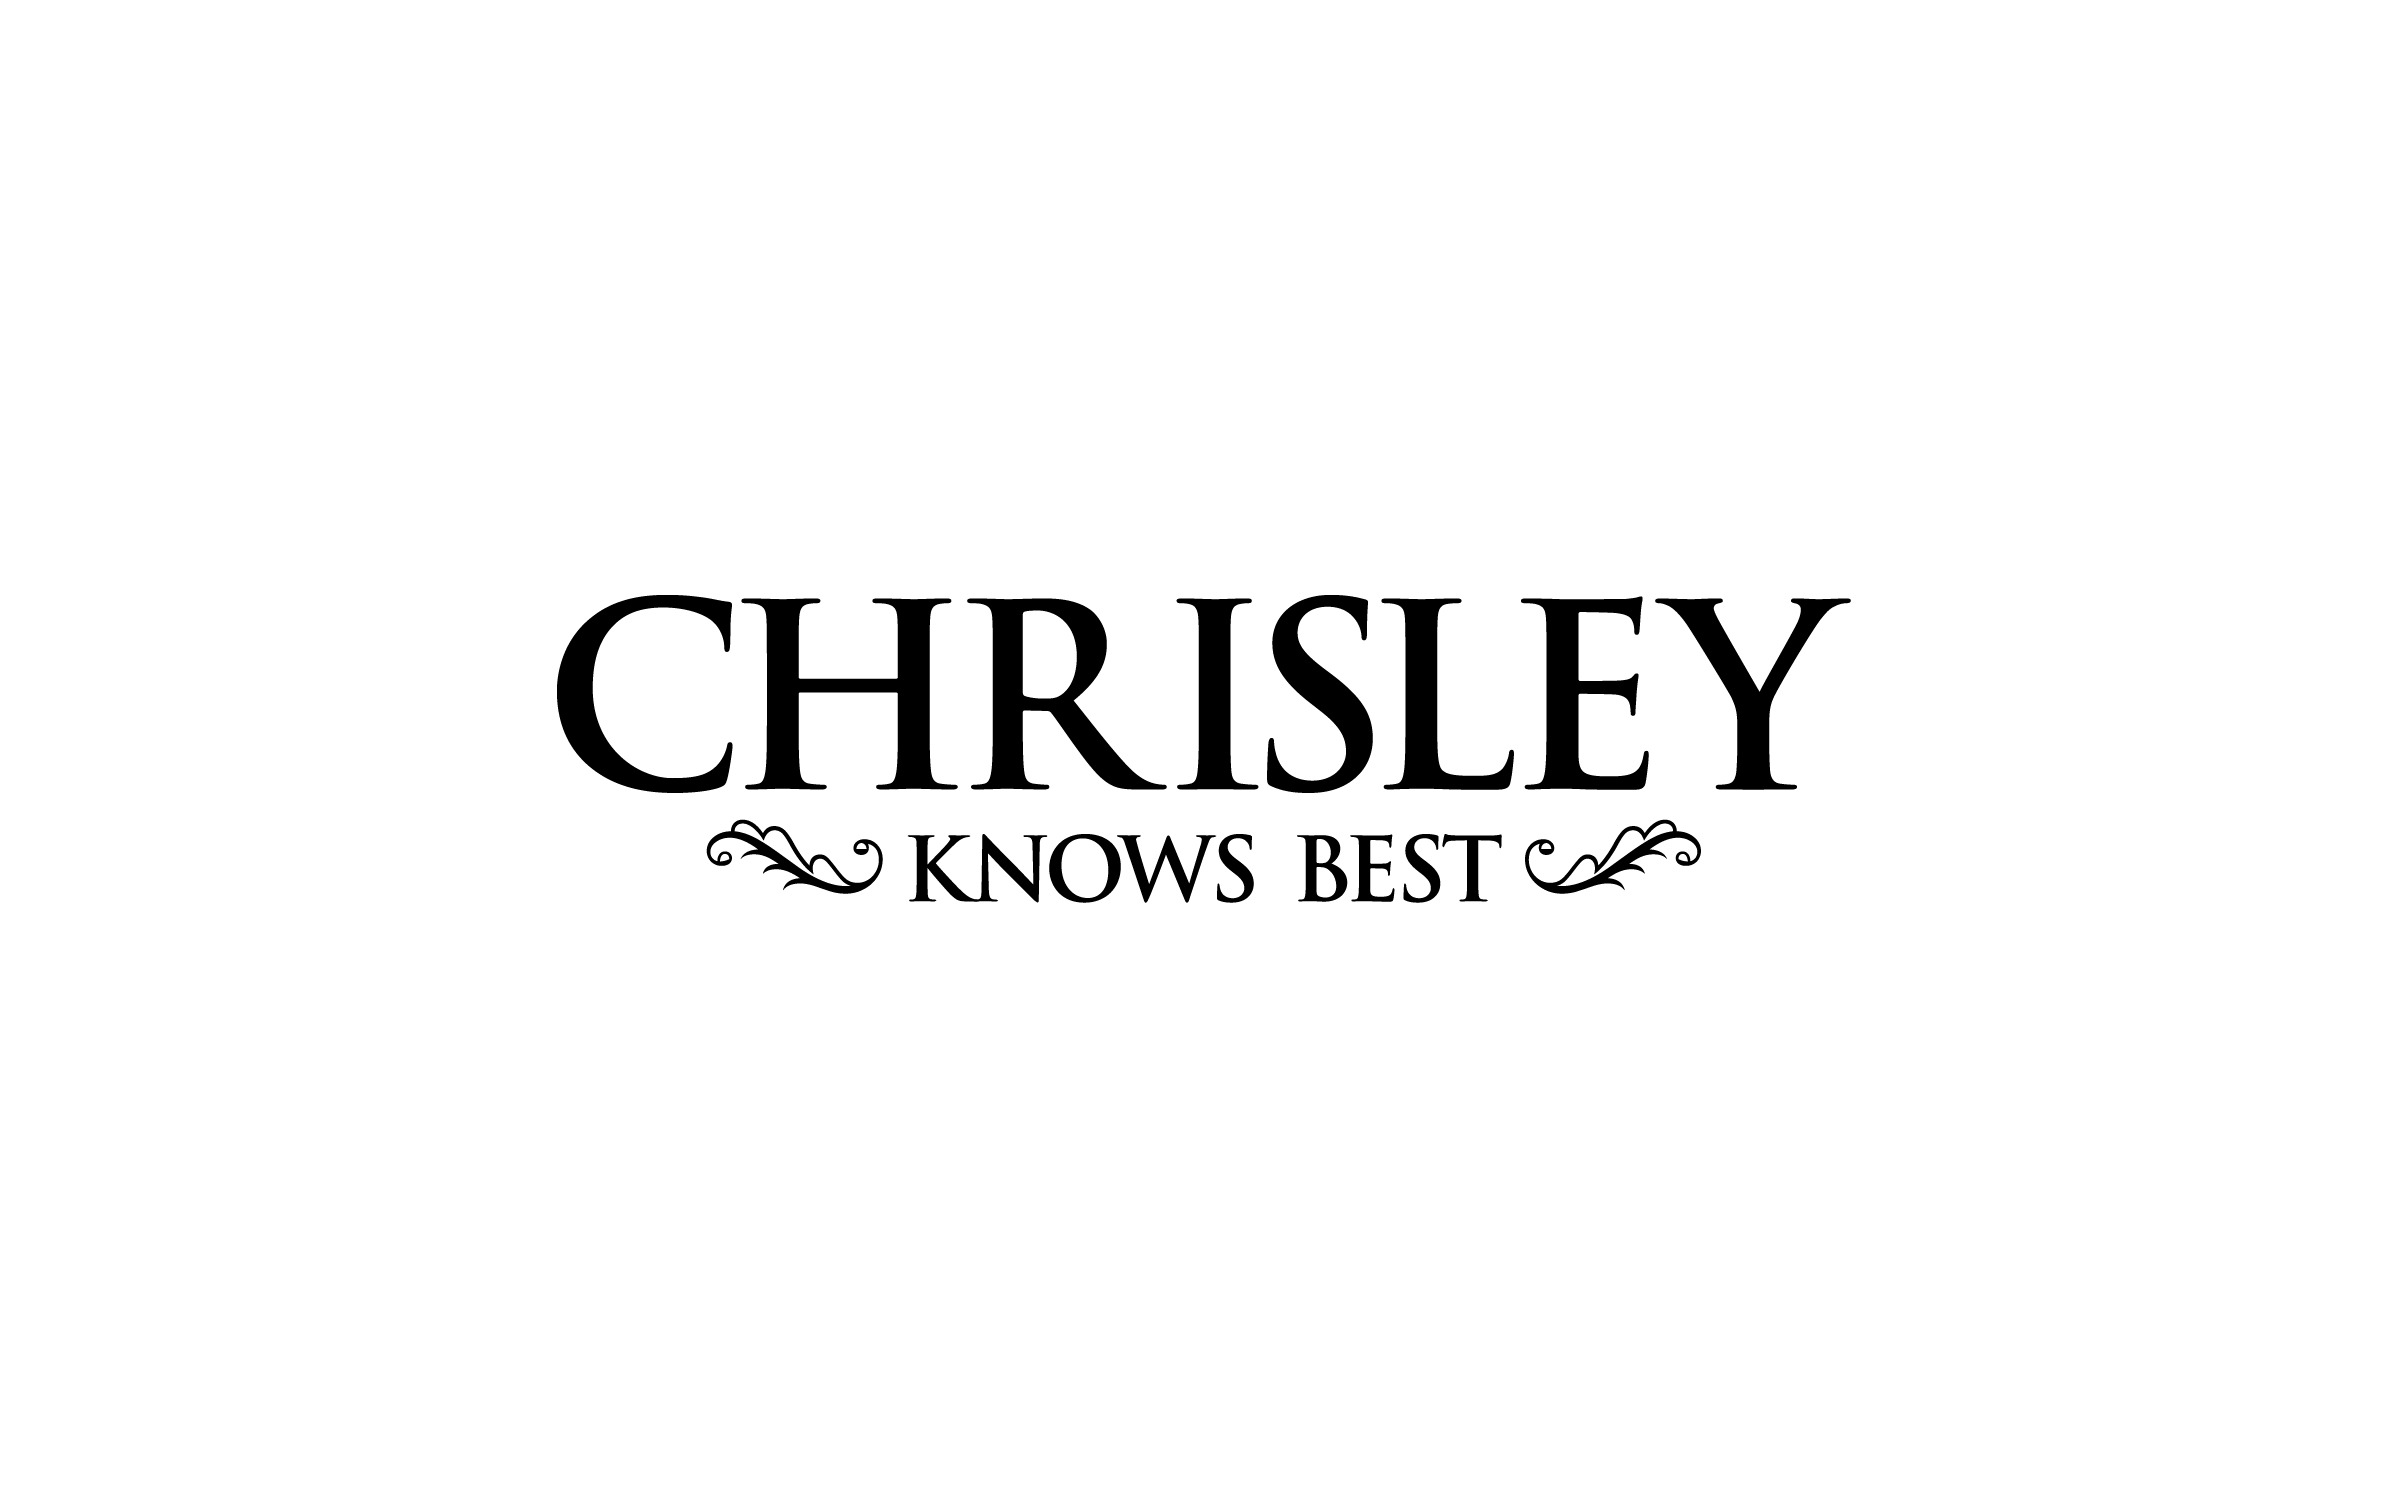 Chrisley%20Knows%20Best_logo3_edited